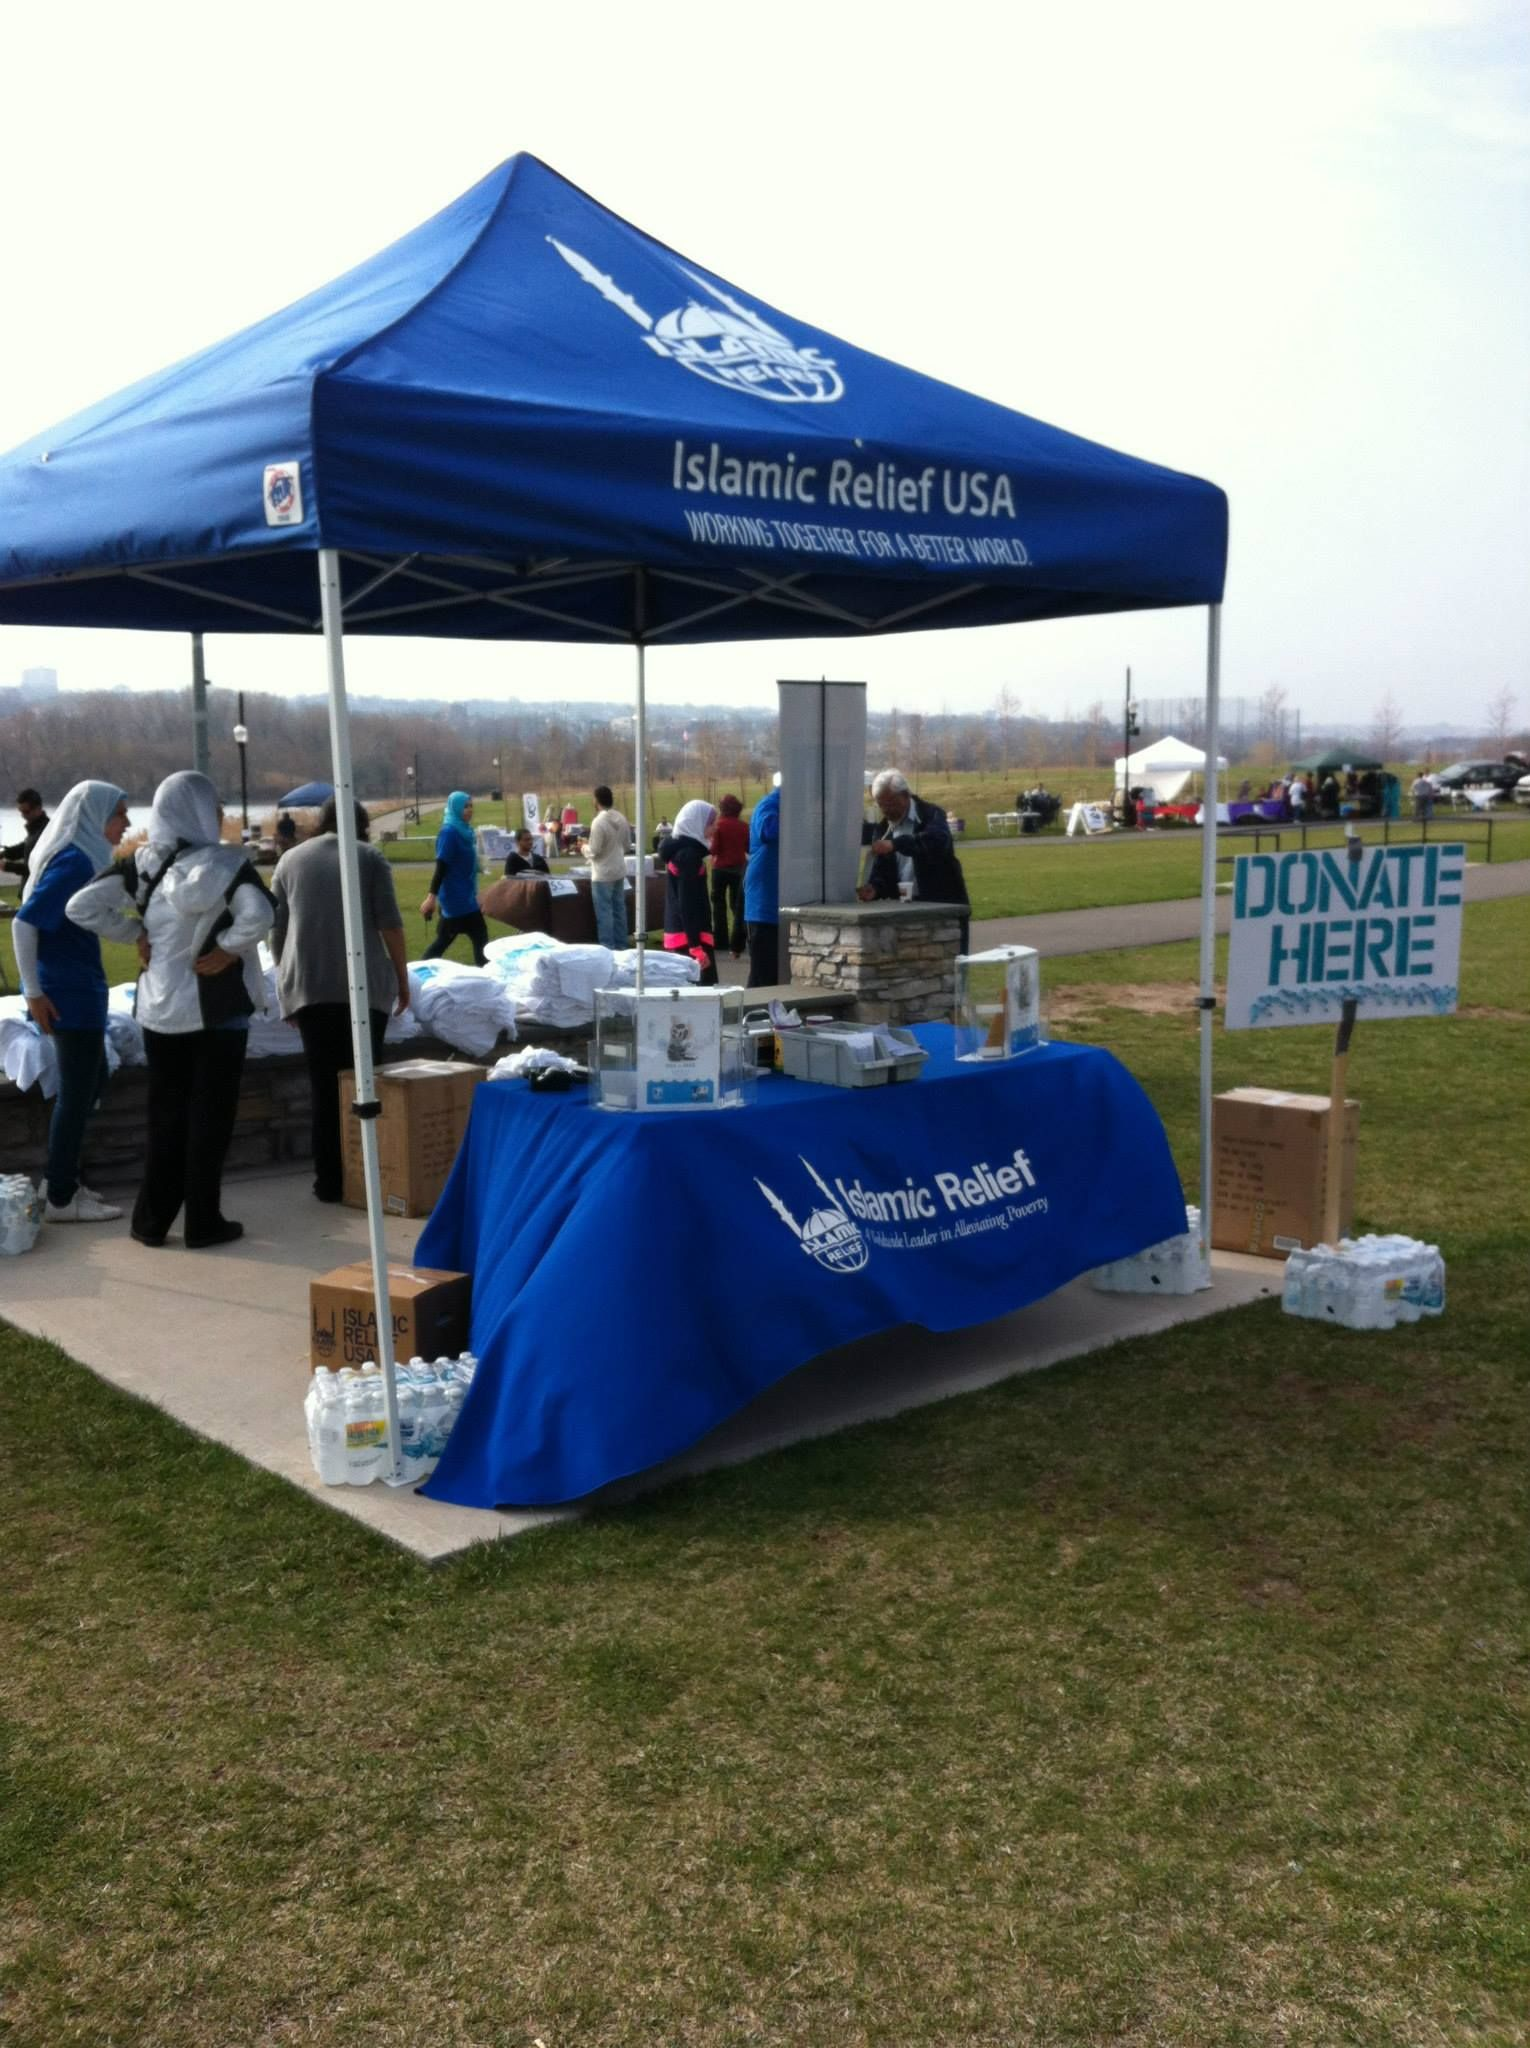 Islamic Relief Usa Booth With Custom Canopy And Personalized Table Cover At Walkforwater Irusa Islamicrelief Islamic Relief Charity Promotion Islam